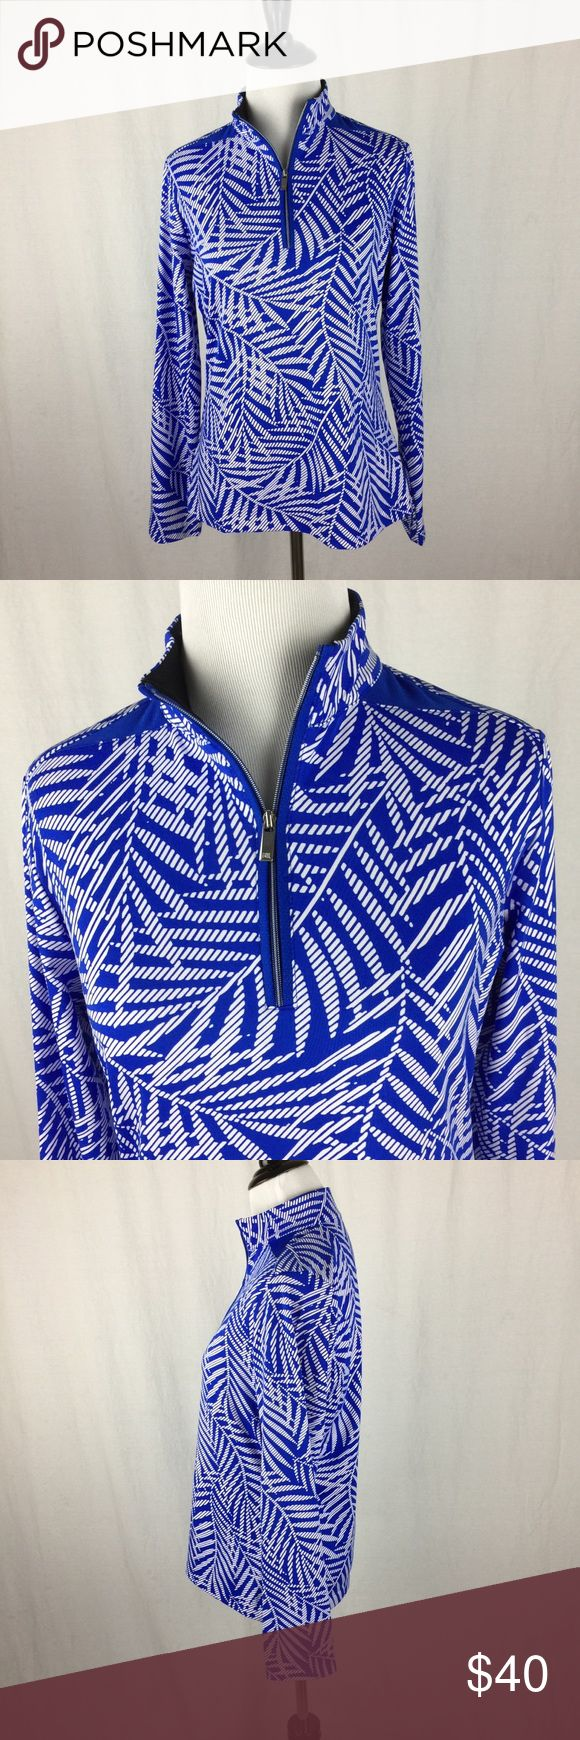 """Tail Activewear Women's Cordele Long Sleeve Size S Tail Activewear Women's Cordele Long Sleeve Mock Palm Size S. Brushed Jersey. Zipper Placket. UPF 50. 92% Polyester, 8% Spandex. Gently worn condition. No stains, tears, or flaws.  Approximate measurements lying flat: Pit to pit: 19"""" Shoulders: 15"""" Sleeve length: 24"""" Length: 24"""" IC 36 Tail Tops Sweatshirts & Hoodies"""